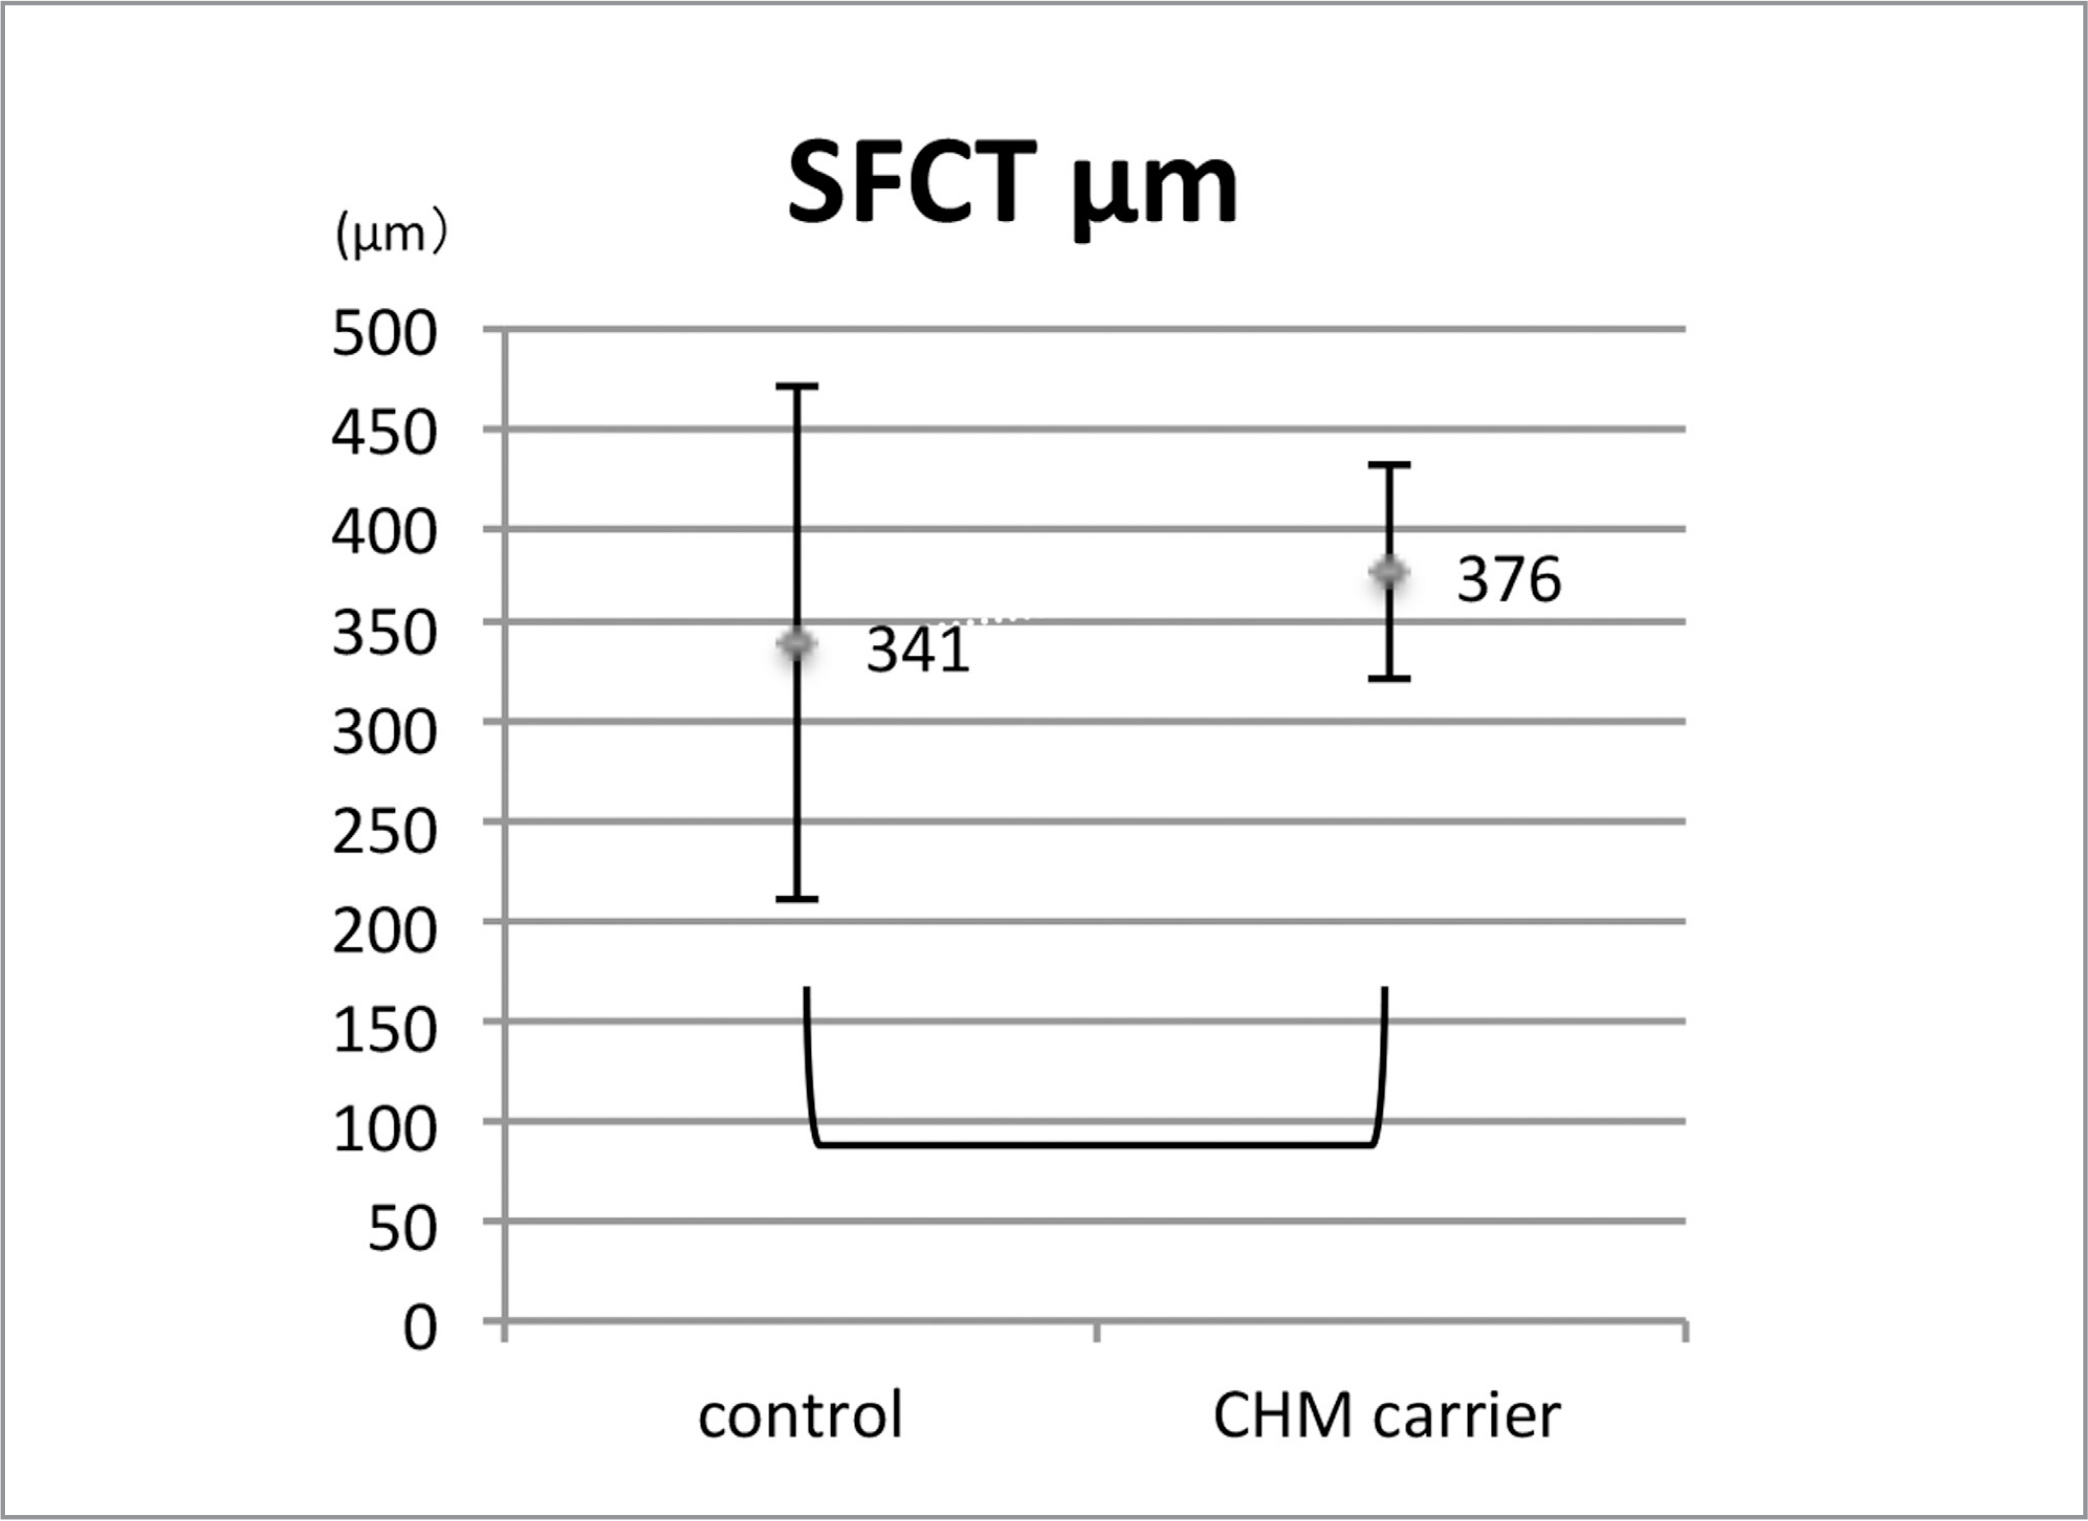 Subfoveal choroidal thickness (SFCT) of choroideremia carriers. SFCT was obtained from the optical coherence tomography images shown in Figure 4. The SFCT is defined as the distance from the retinal pigment epithelium to chorioscleral interface. The SFCT of the carriers are compared to healthy control of our hospital. No significant differences were found between CHM carriers and our healthy controls.